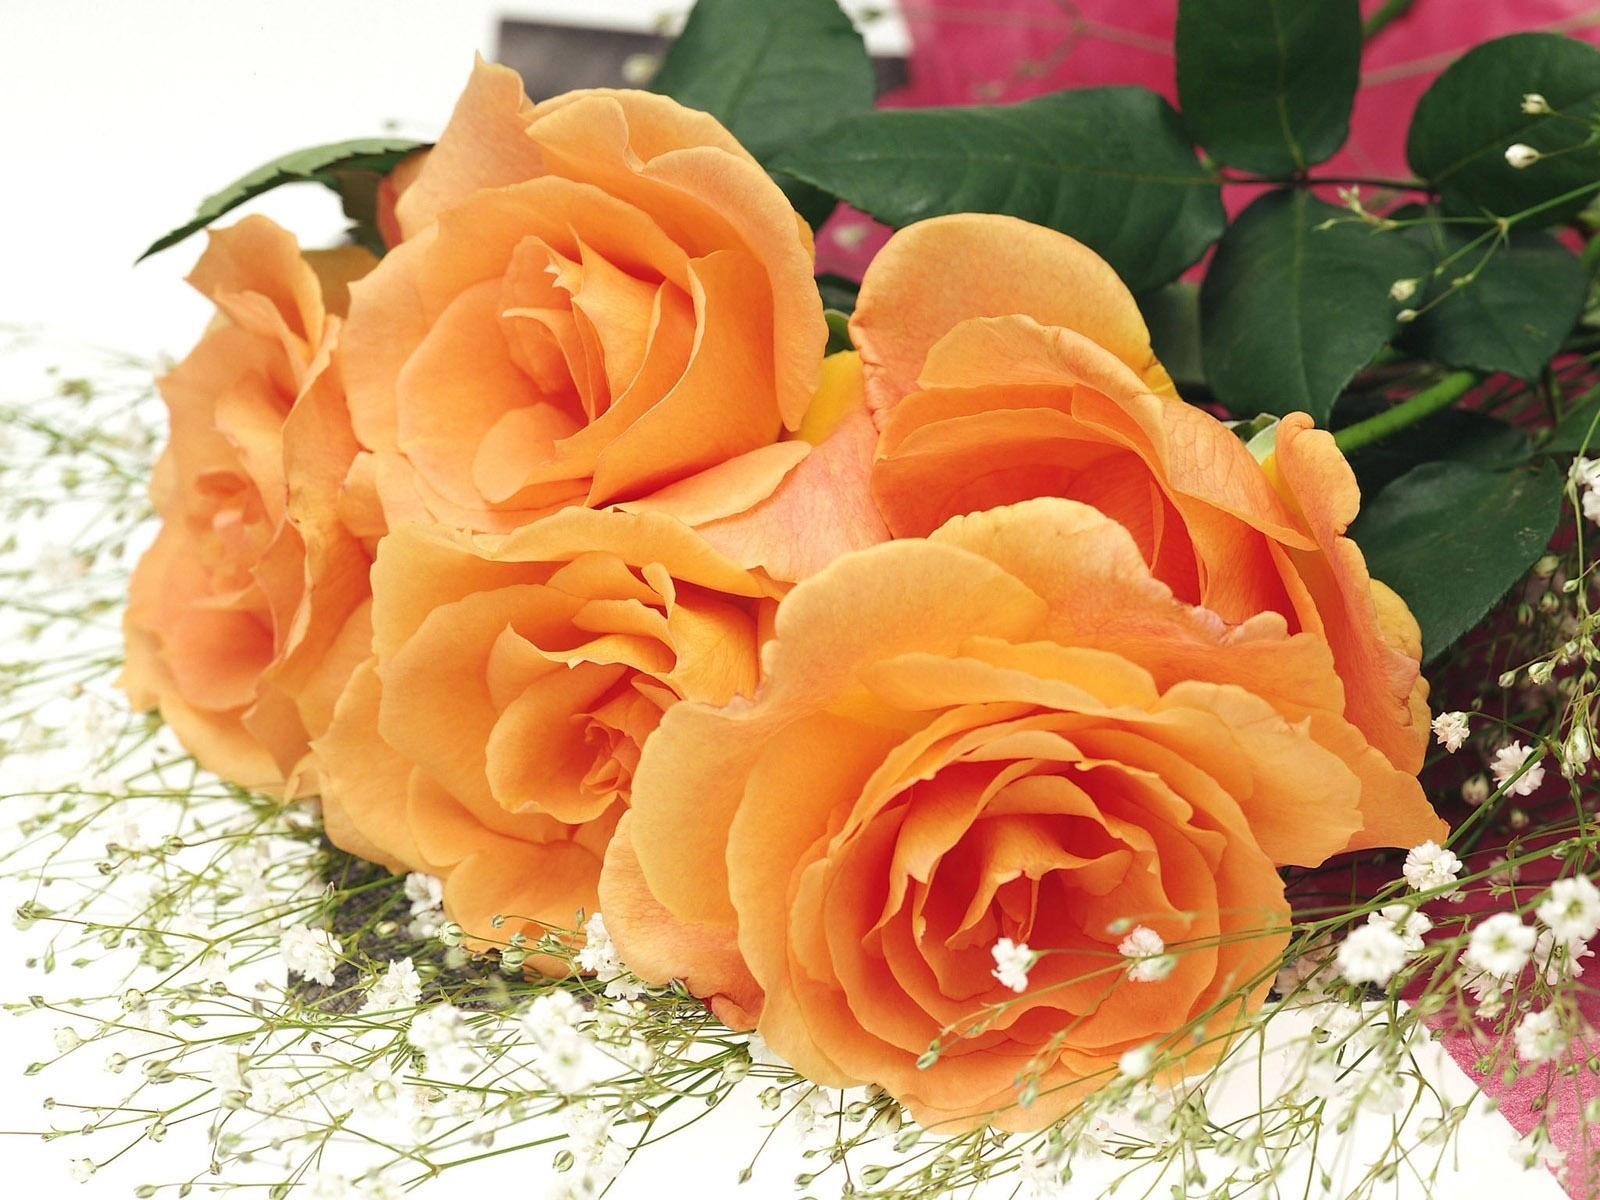 Roses Images Awesome Orange Roses Hd Fond D Ecran And Background